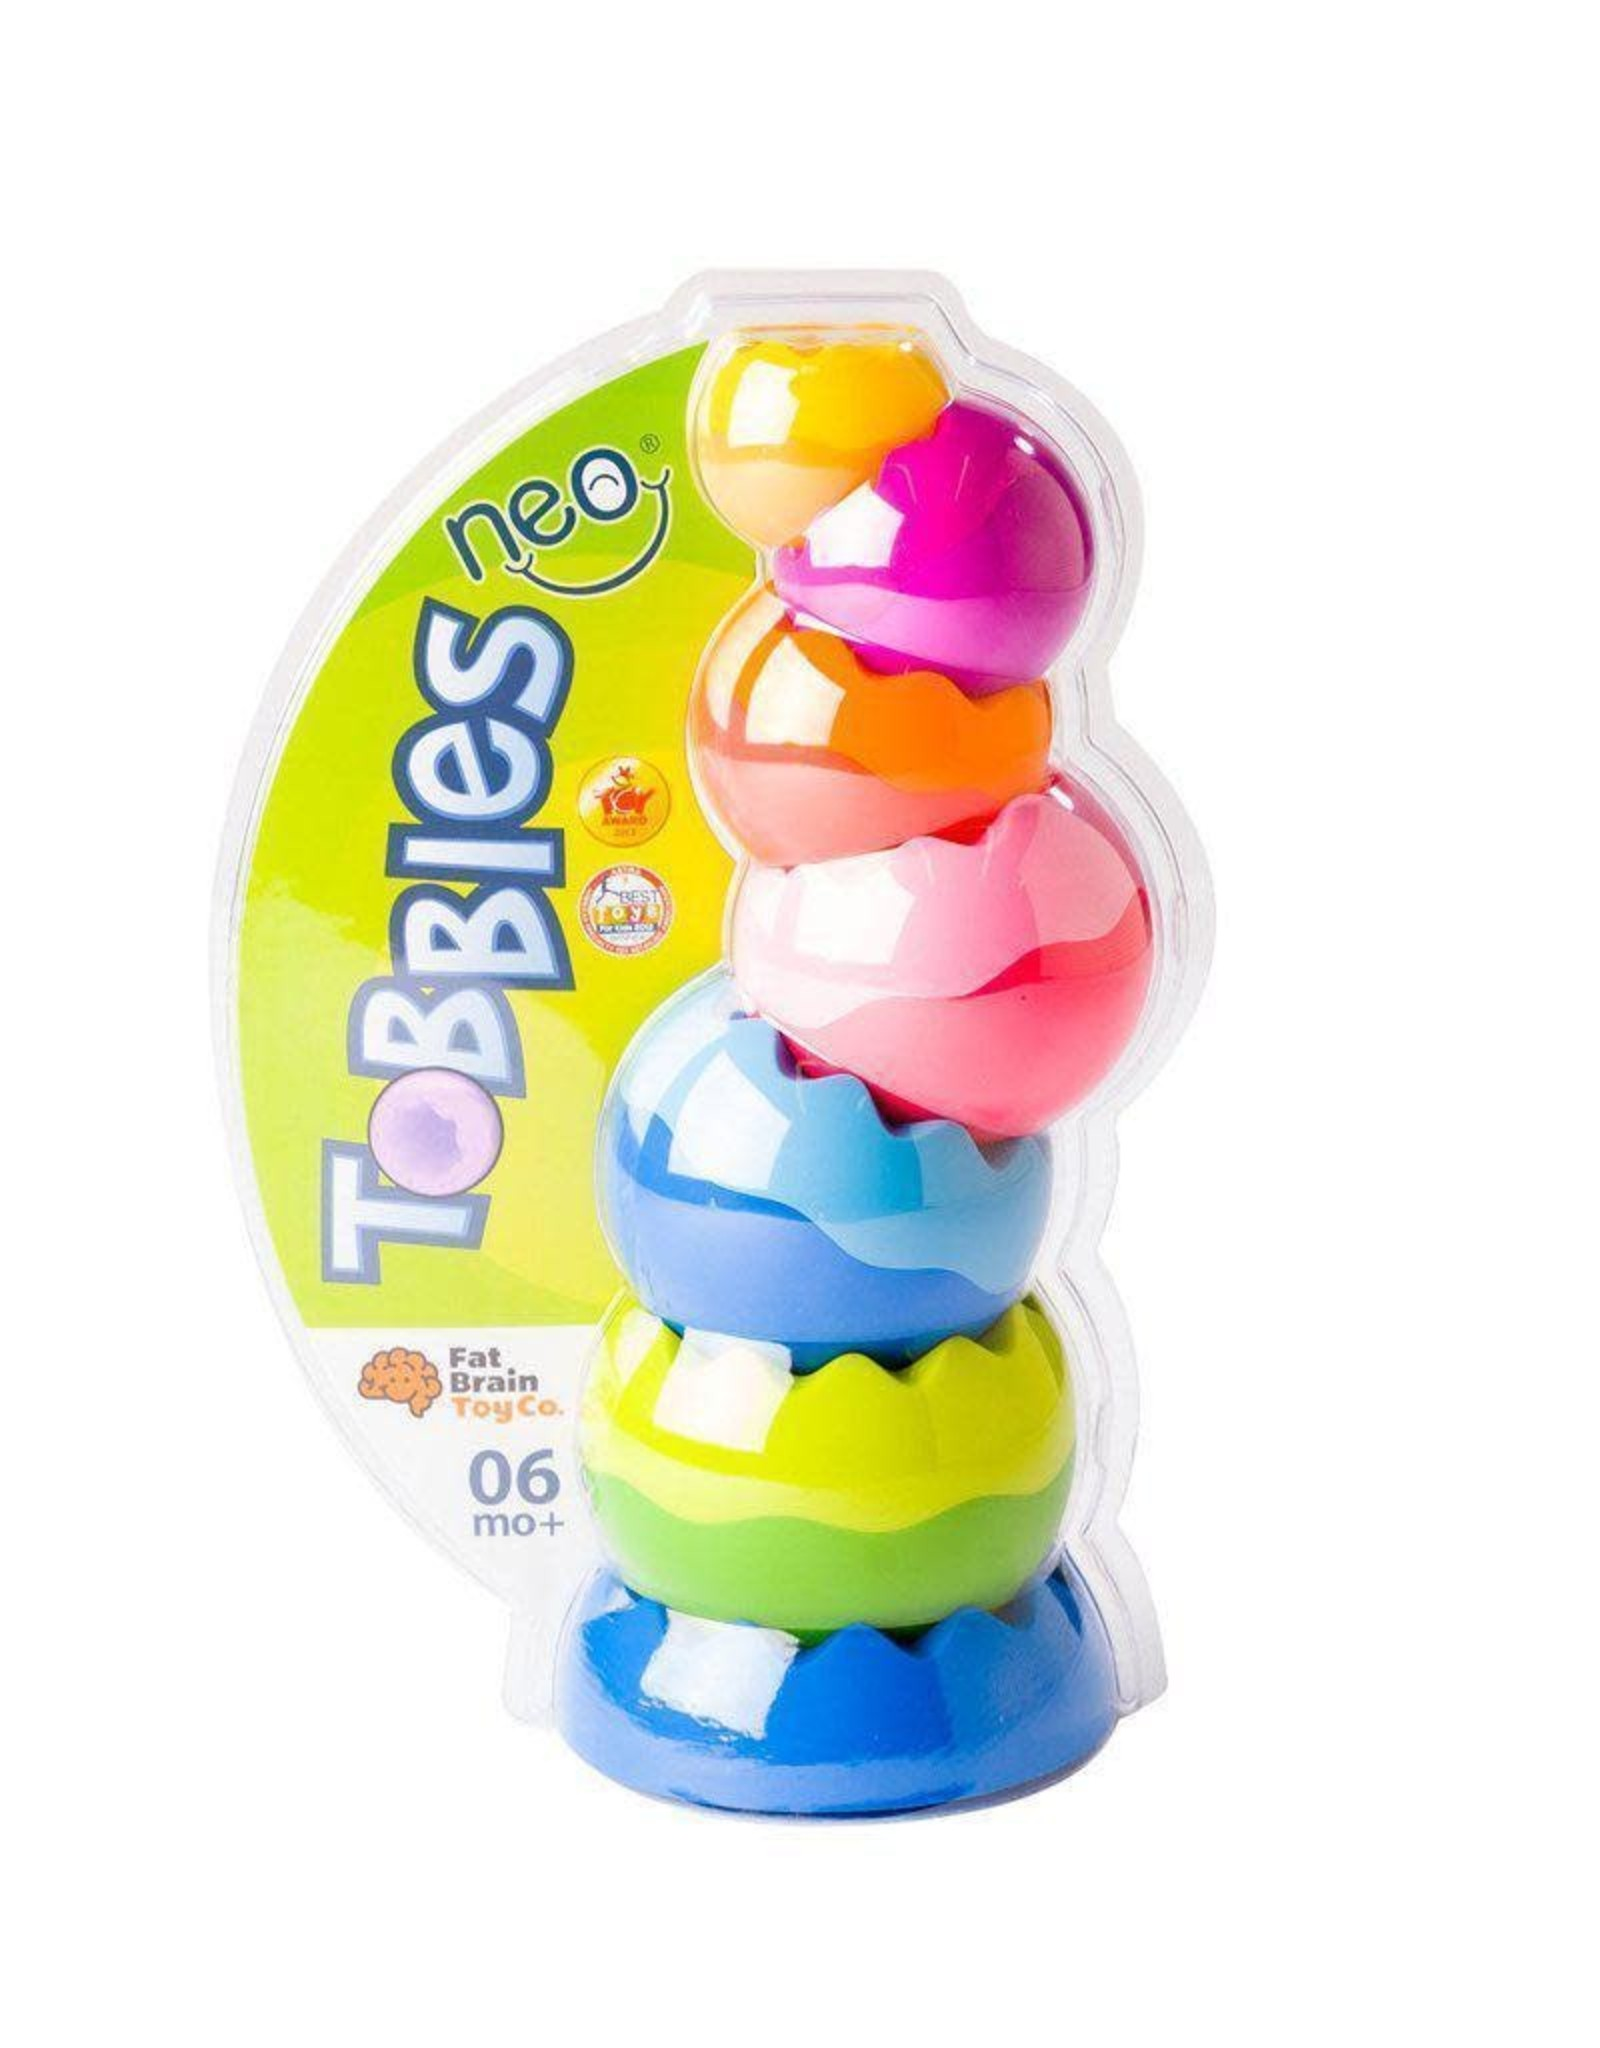 Fat Brain Toy Co. Topples Neo